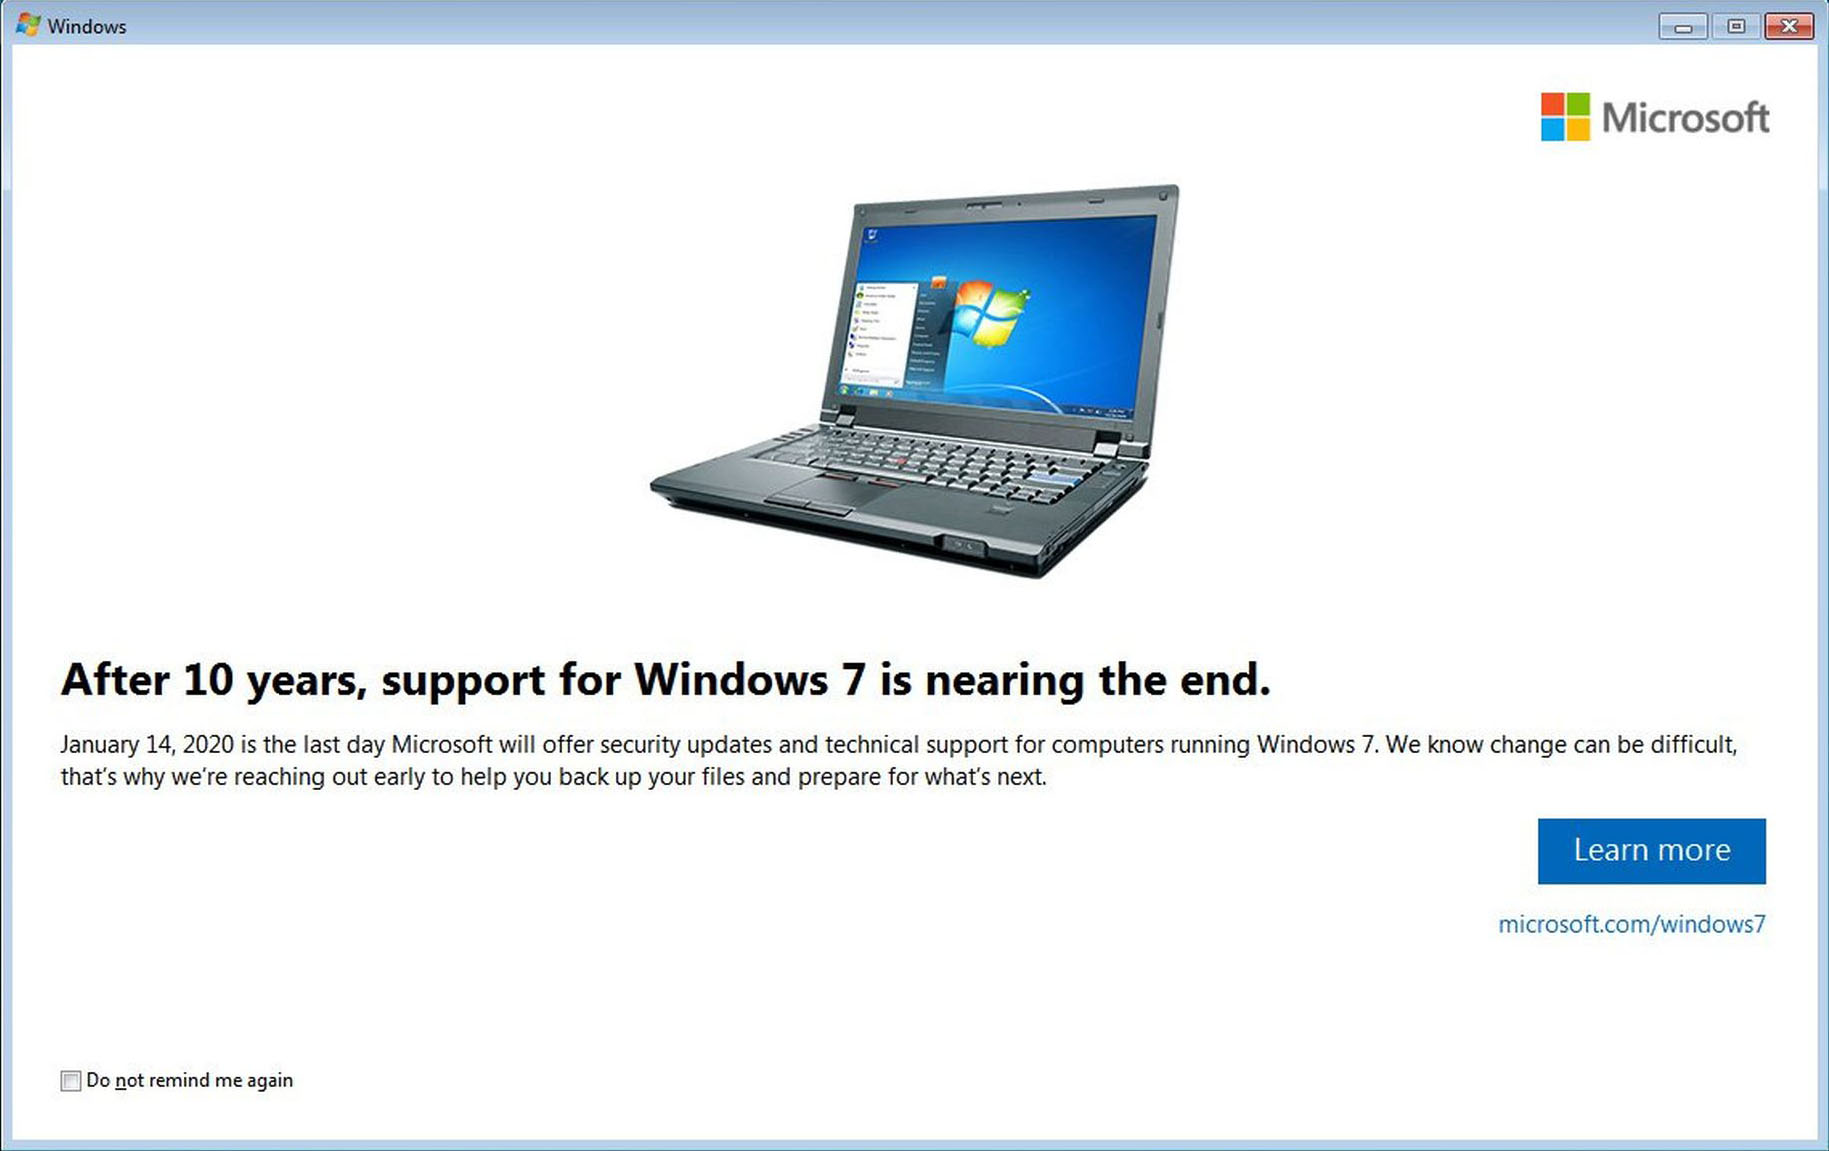 Windows 7 End of Life Notification